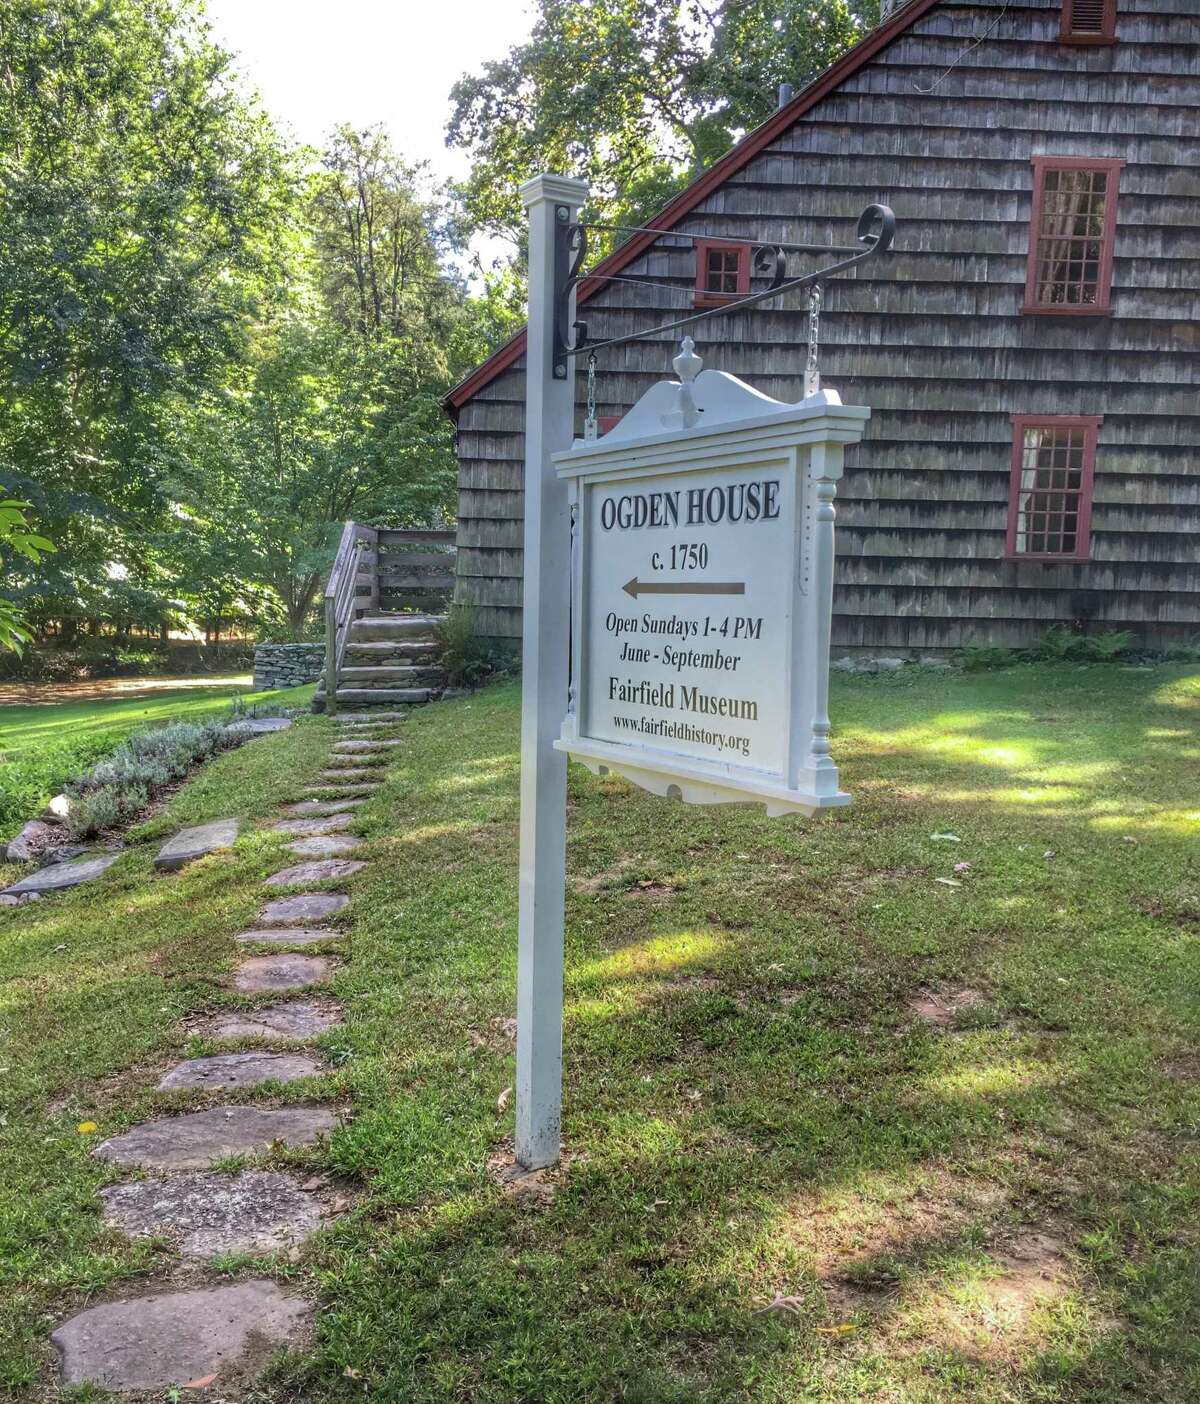 The Ogden House, a stellar example of 18th century saltbox-style architecture.